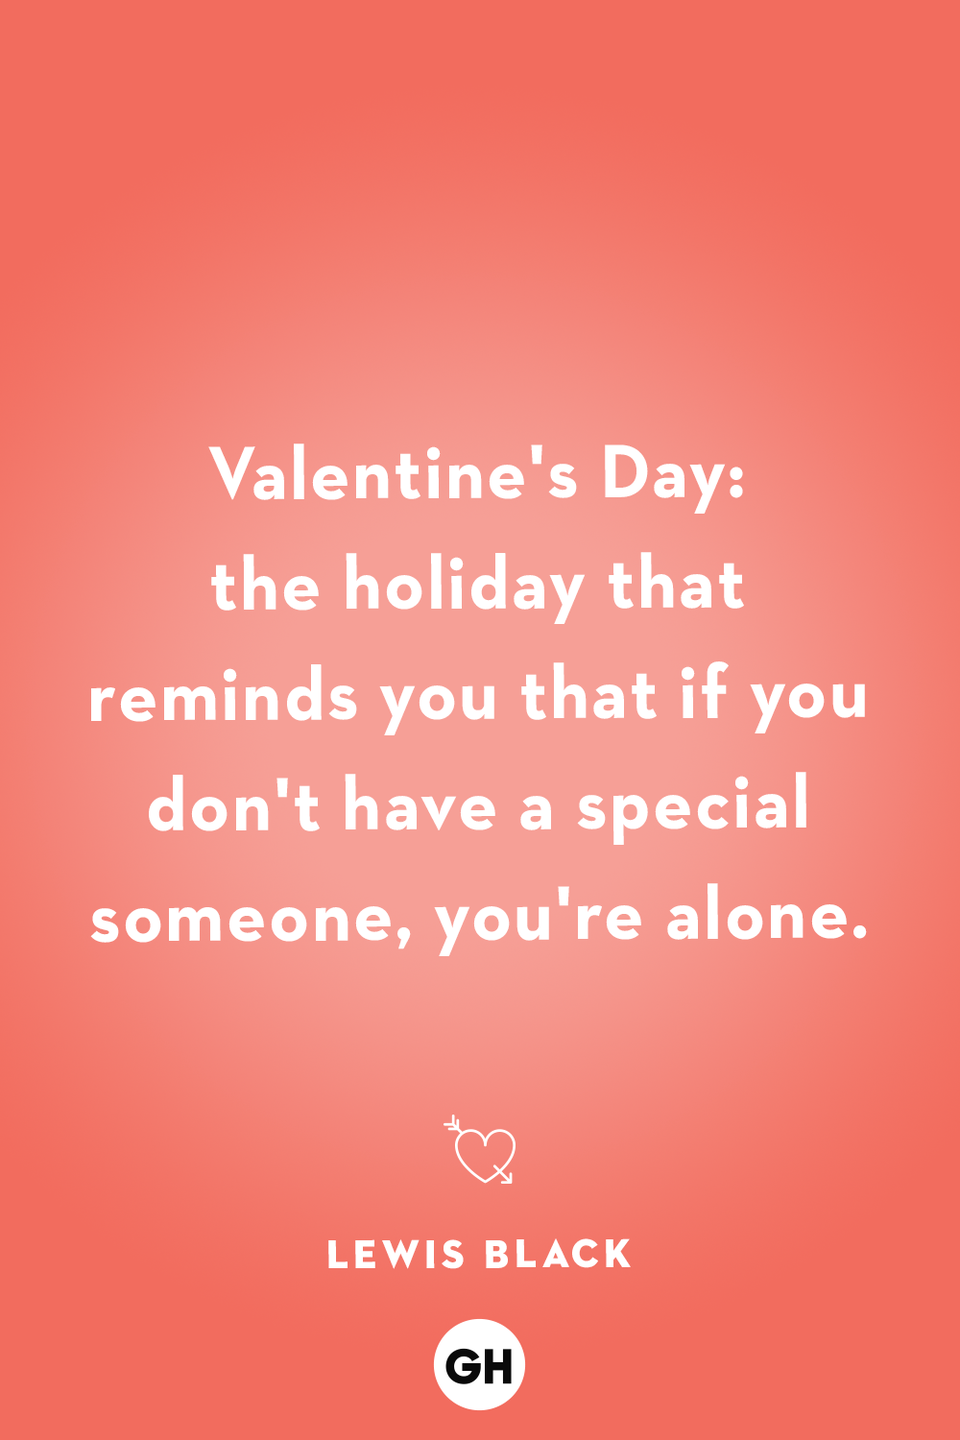 <p>Valentine's Day: the holiday that reminds you that if you don't have a special someone, you're alone.</p>